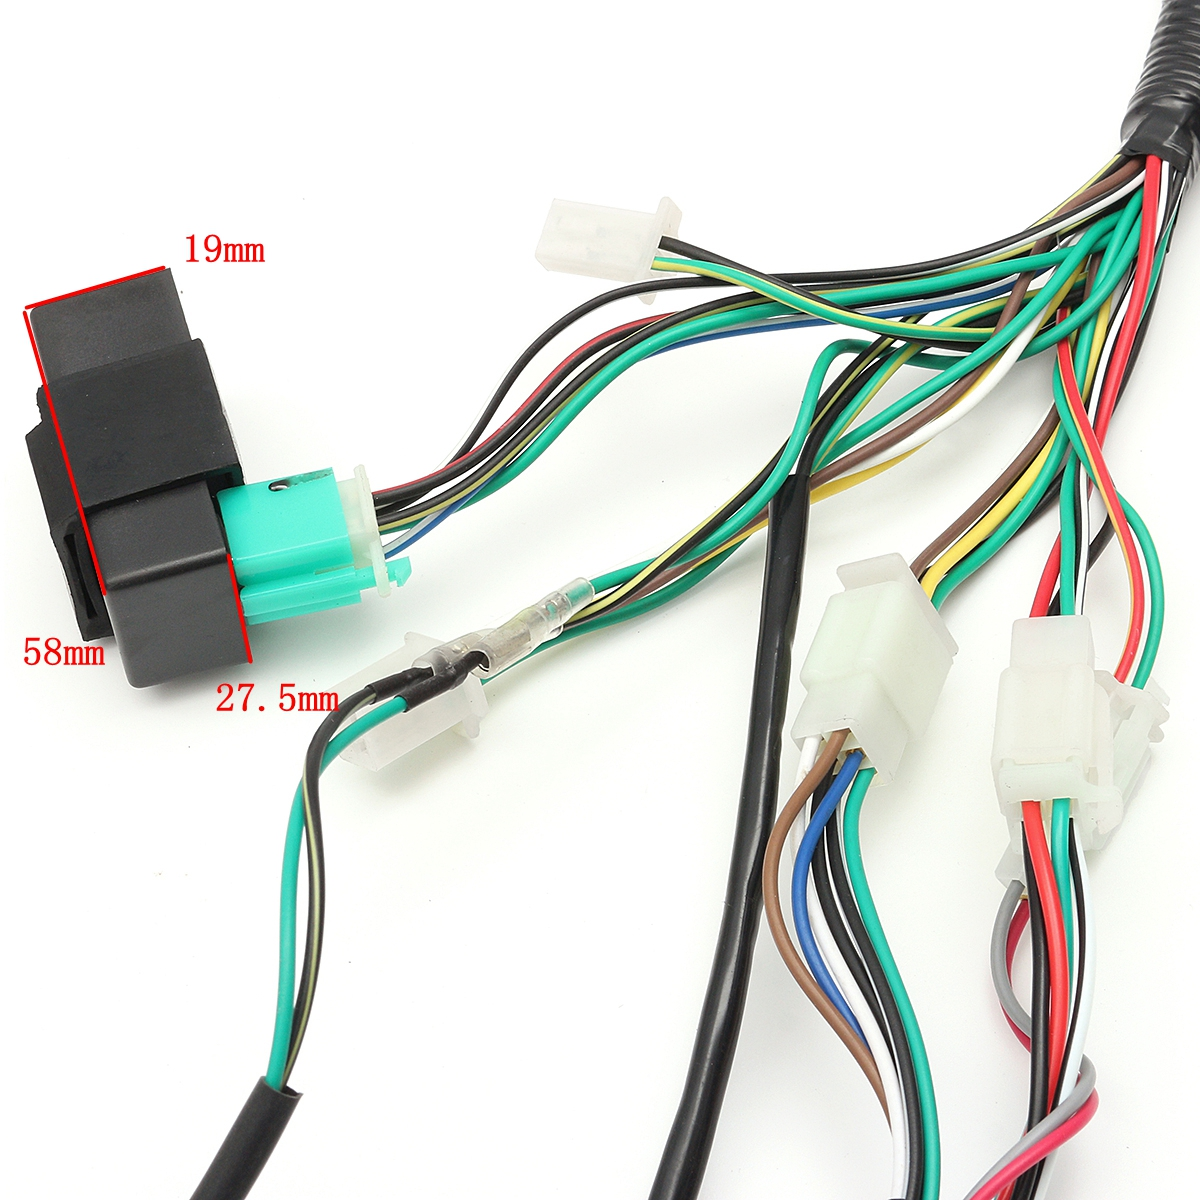 Pocket Bike Wiring Cdi Data Diagrams 50cc Diagram Harness Loom Solenoid Coil Rectifier 70cc Manual Scooter